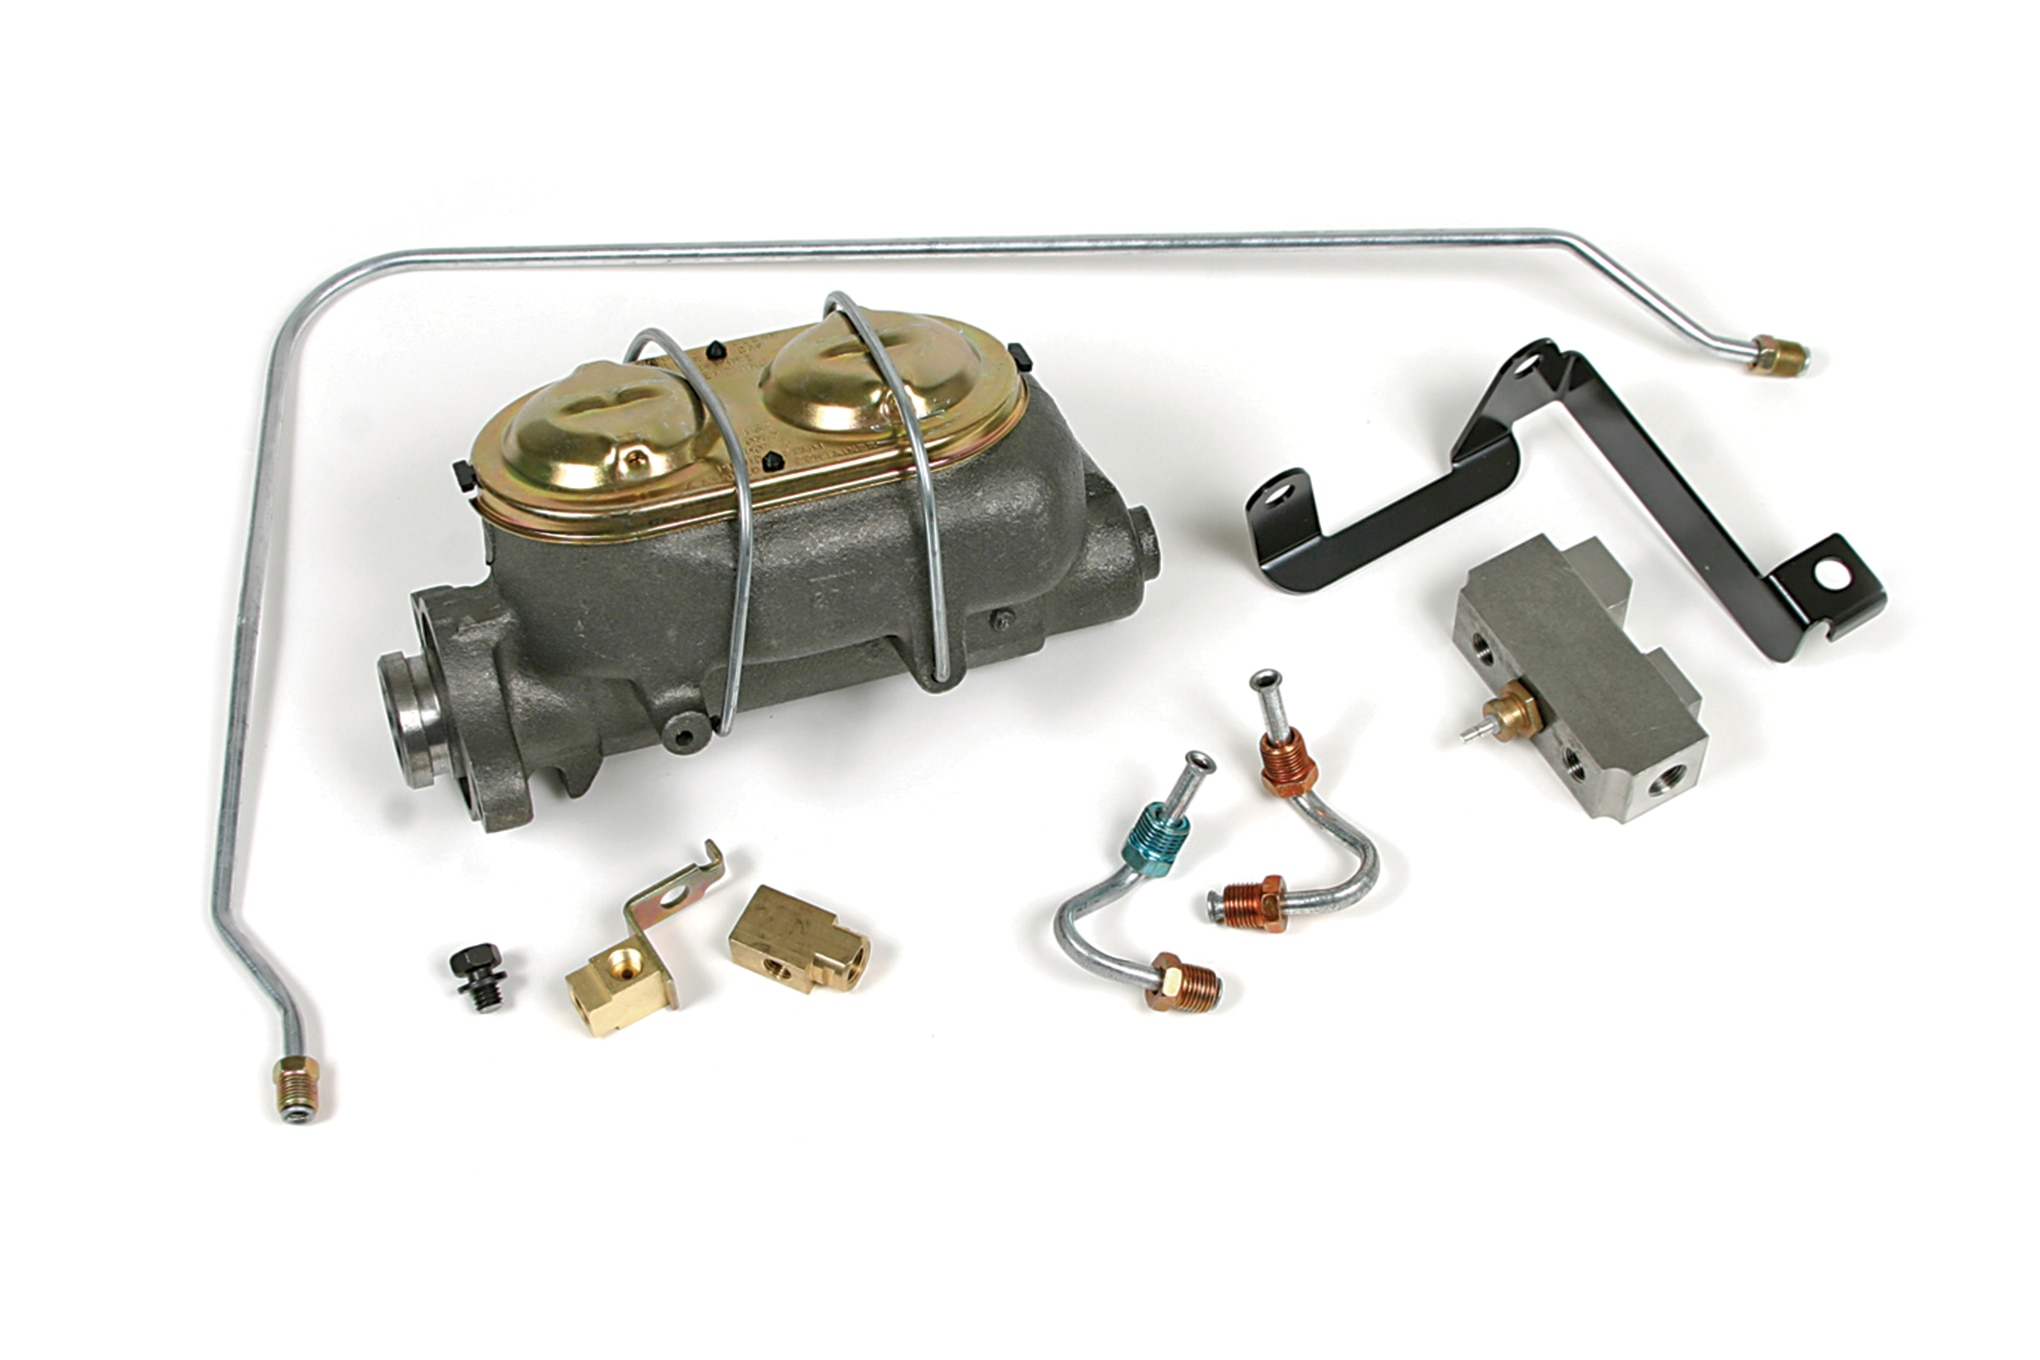 Upgrading from a Single to Dual Reservoir Master Cylinder on Your Early Corvette